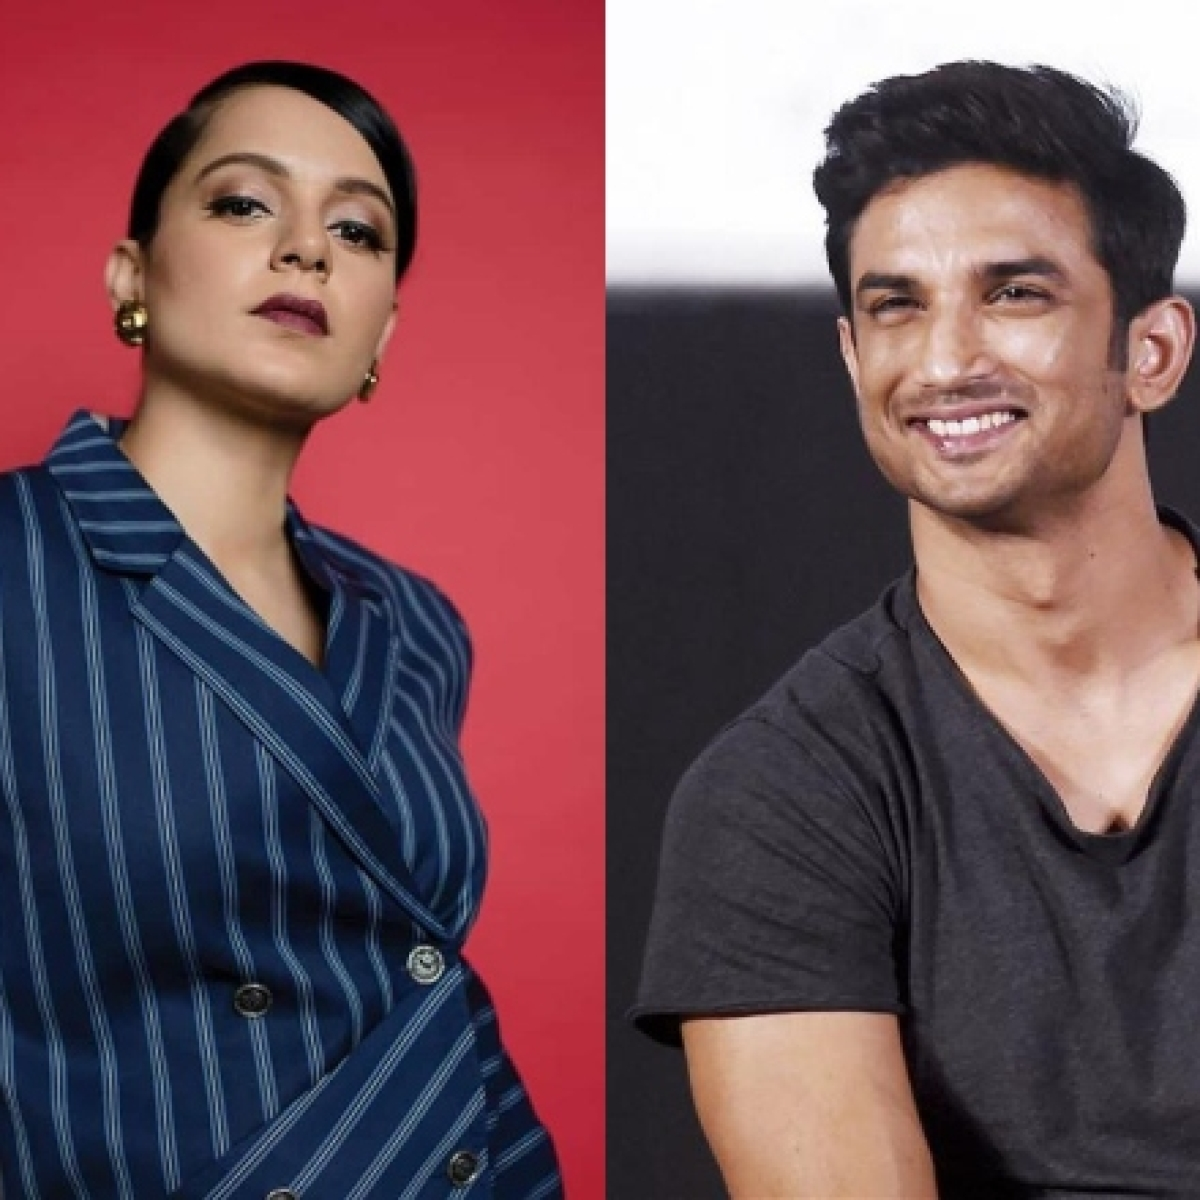 When Kangana Ranaut was too busy to work with Sushant Singh Rajput